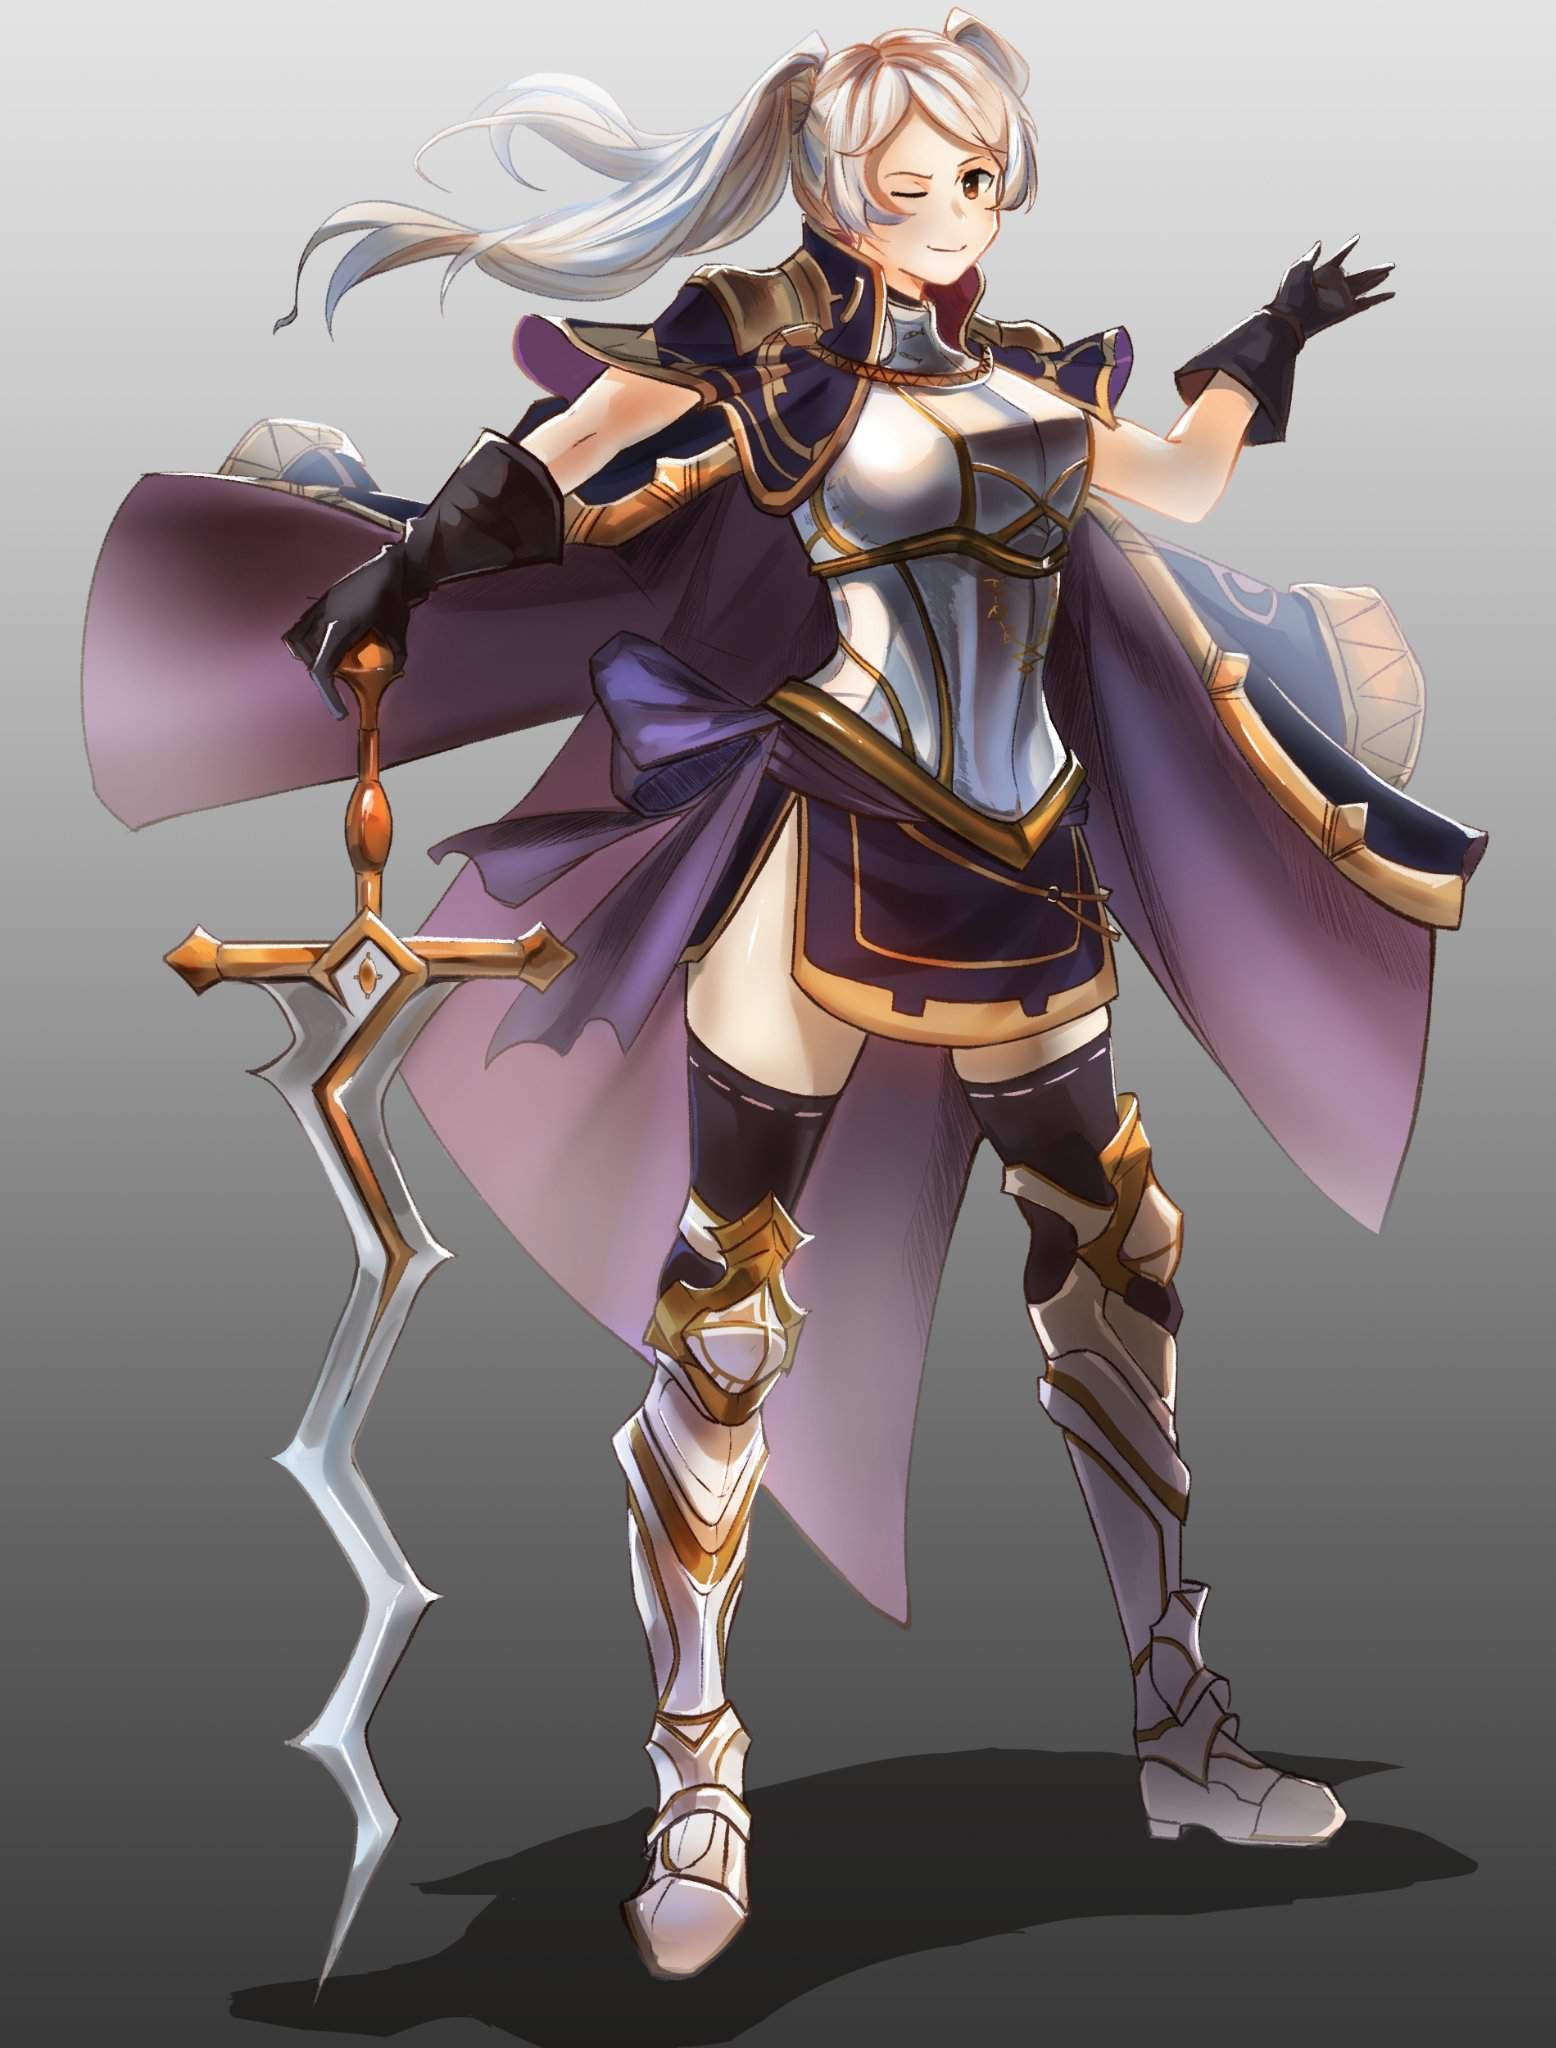 Grandmaster Robin Fire Emblem Amino With two different genders, three voices and heights, different faces for each, and plenty of different hair colors, robin is one of the most customizable characters in fire emblem history. amino apps